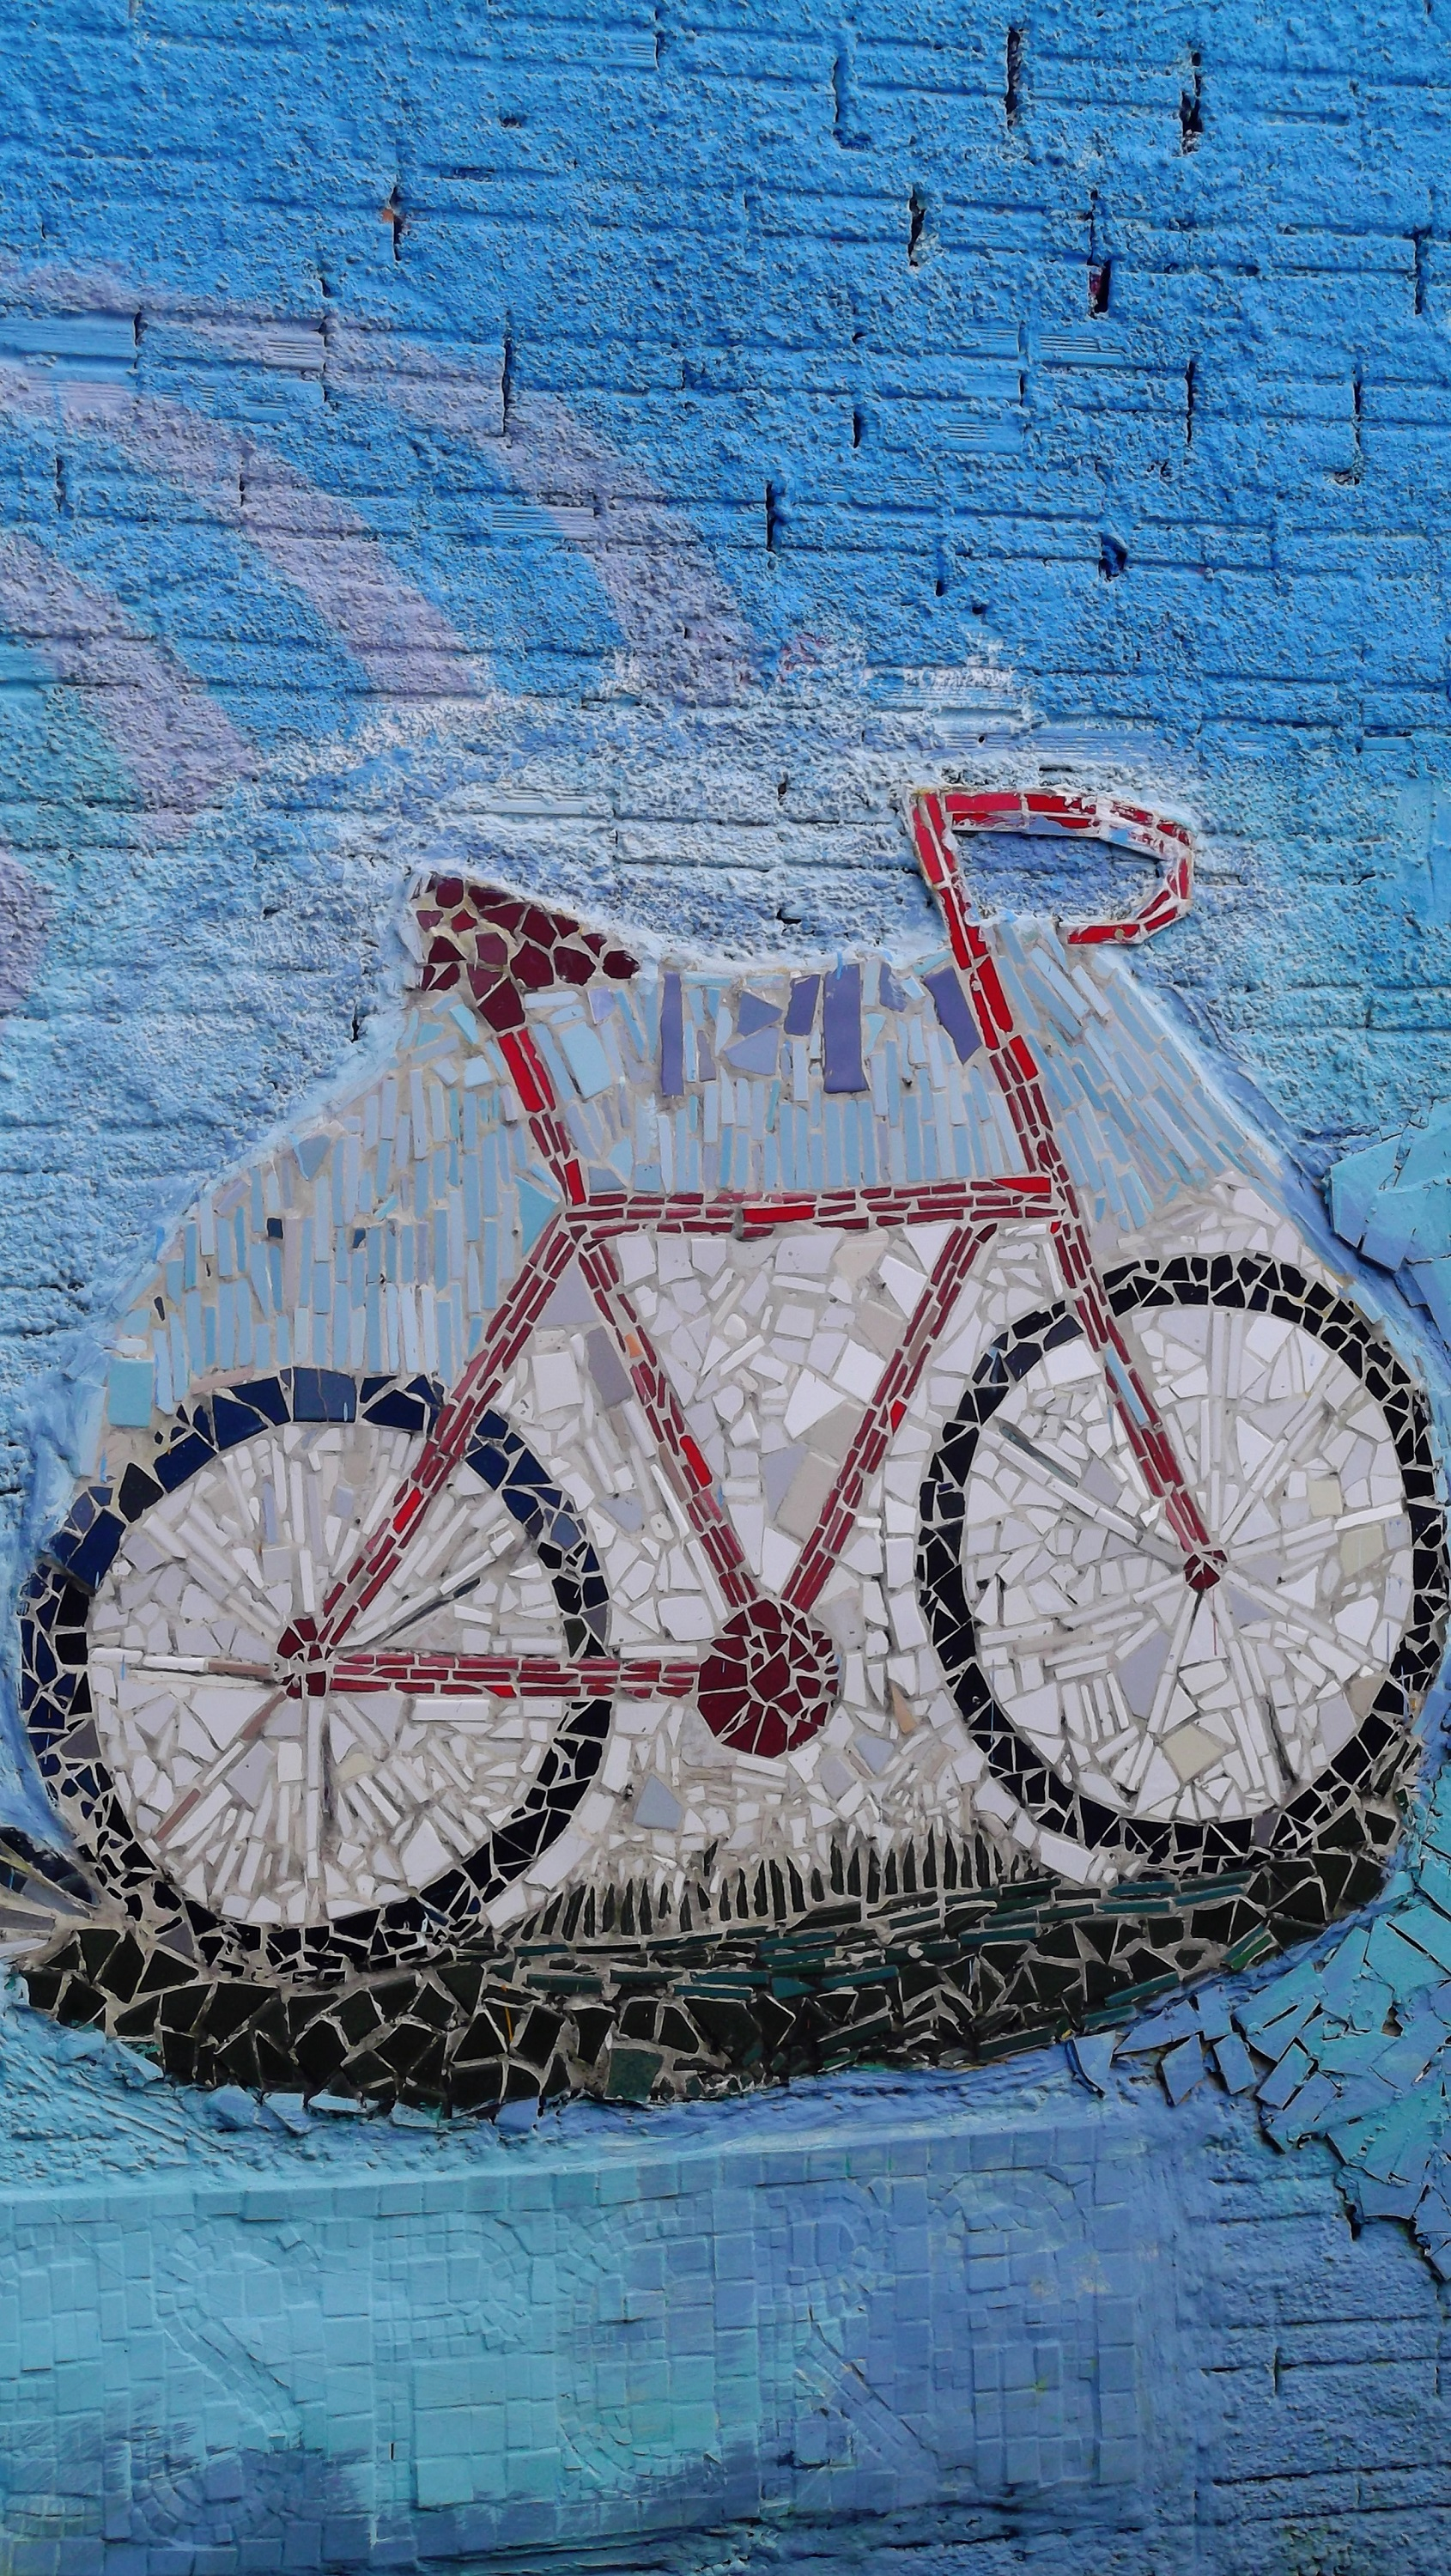 Hd Love Wallpapers For Mobile Free Download Free Stock Photo Of Art Bike Mosaic